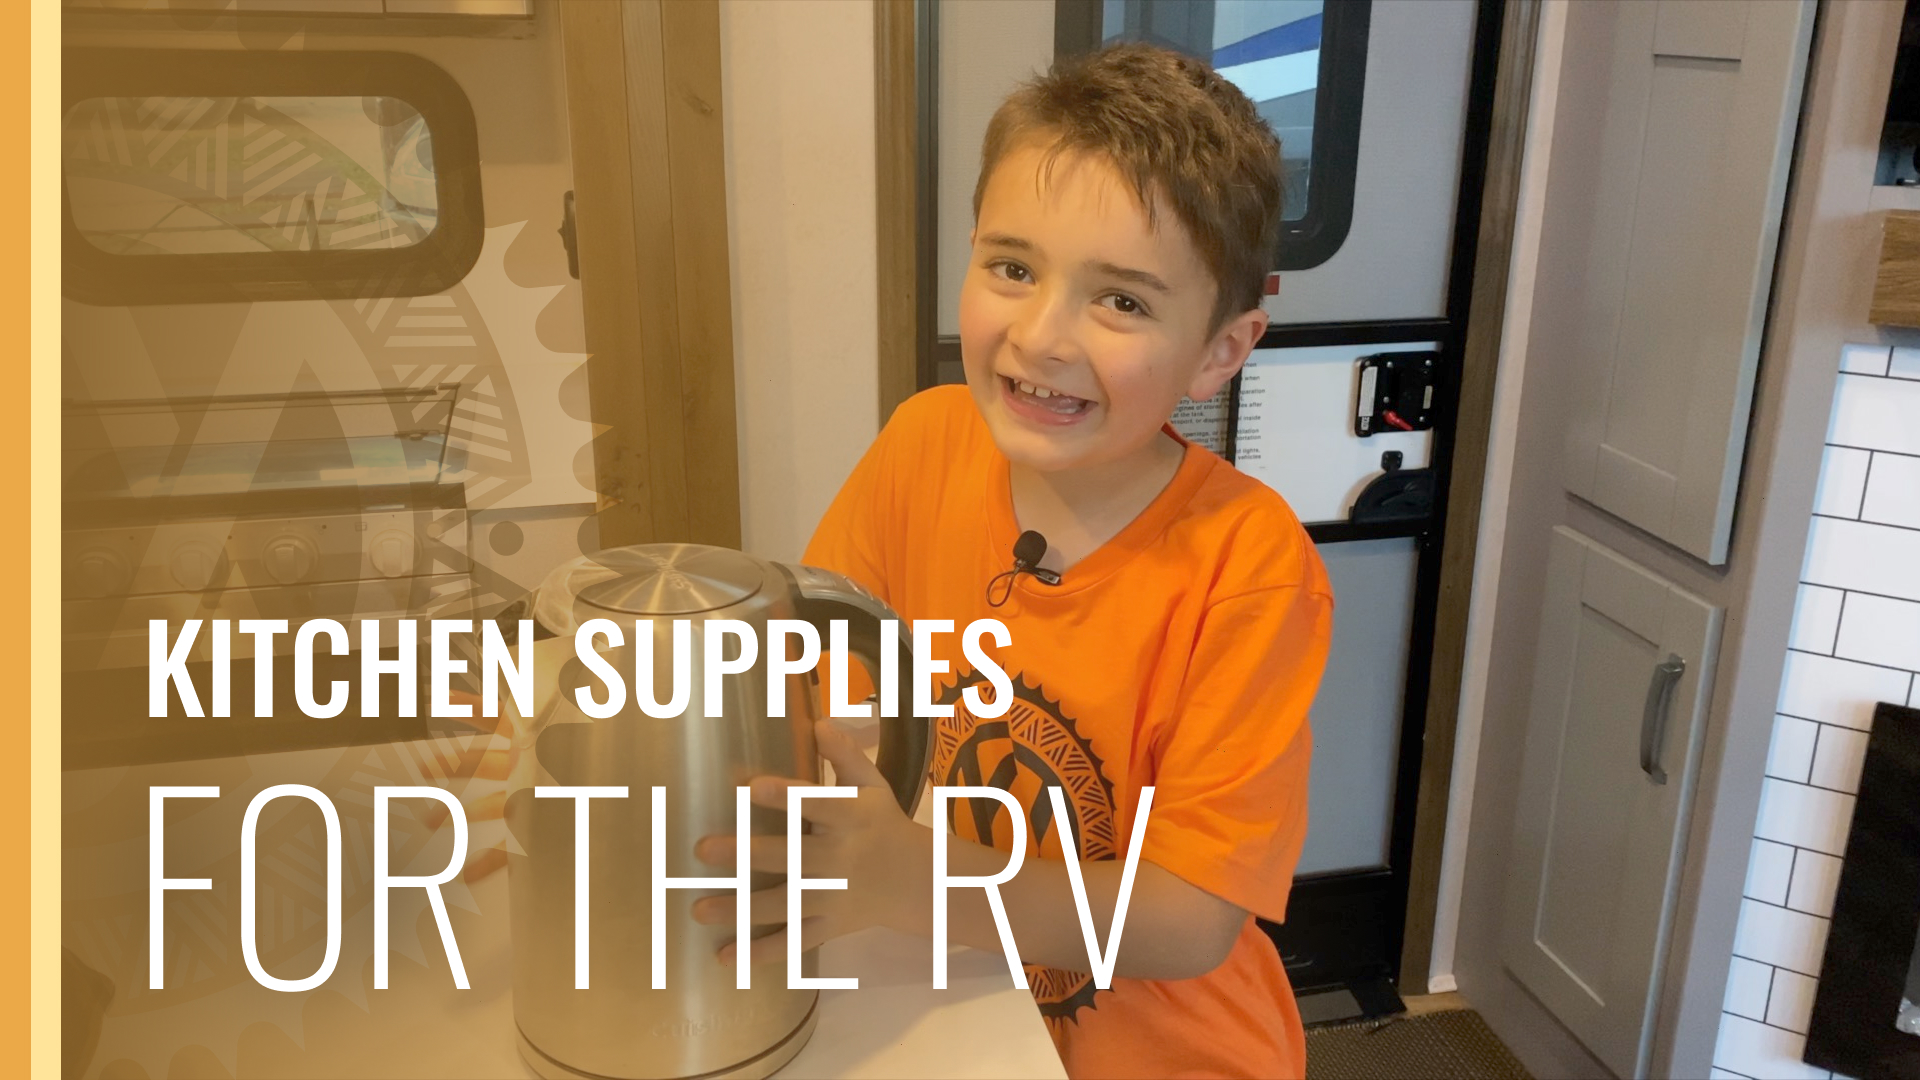 this is a thumbnail for the video. It has a picture of our son holding a kettle Inside of our fusion 427 keystone RV.